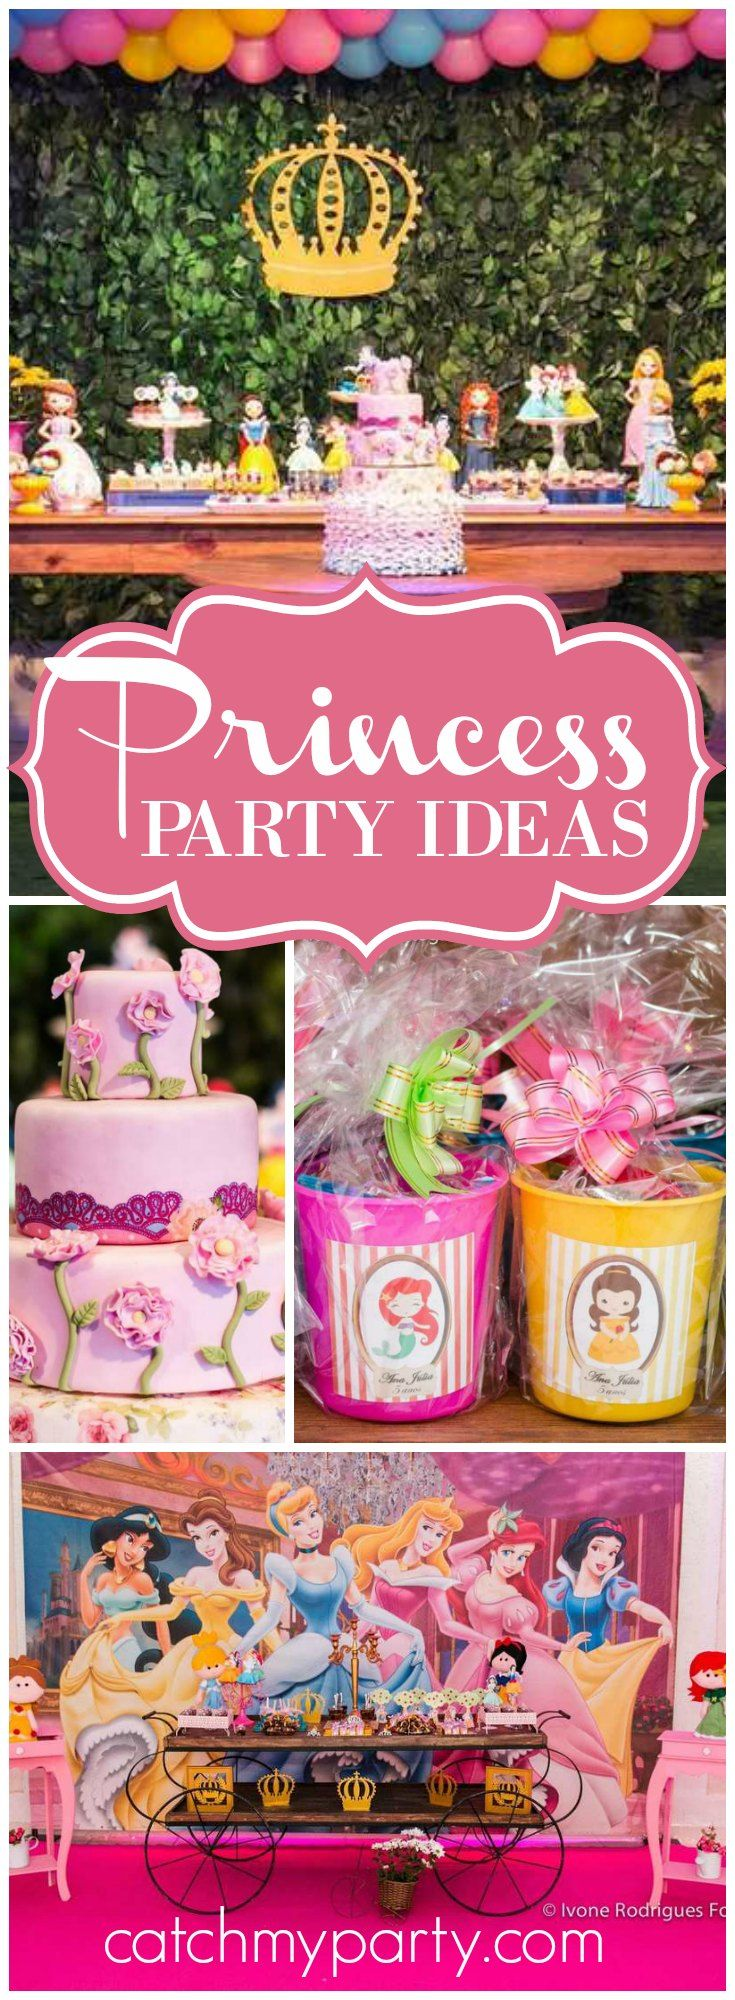 All of the Disney princesses are featured at this beautiful birthday party! See more party ideas at CatchMyParty.com!